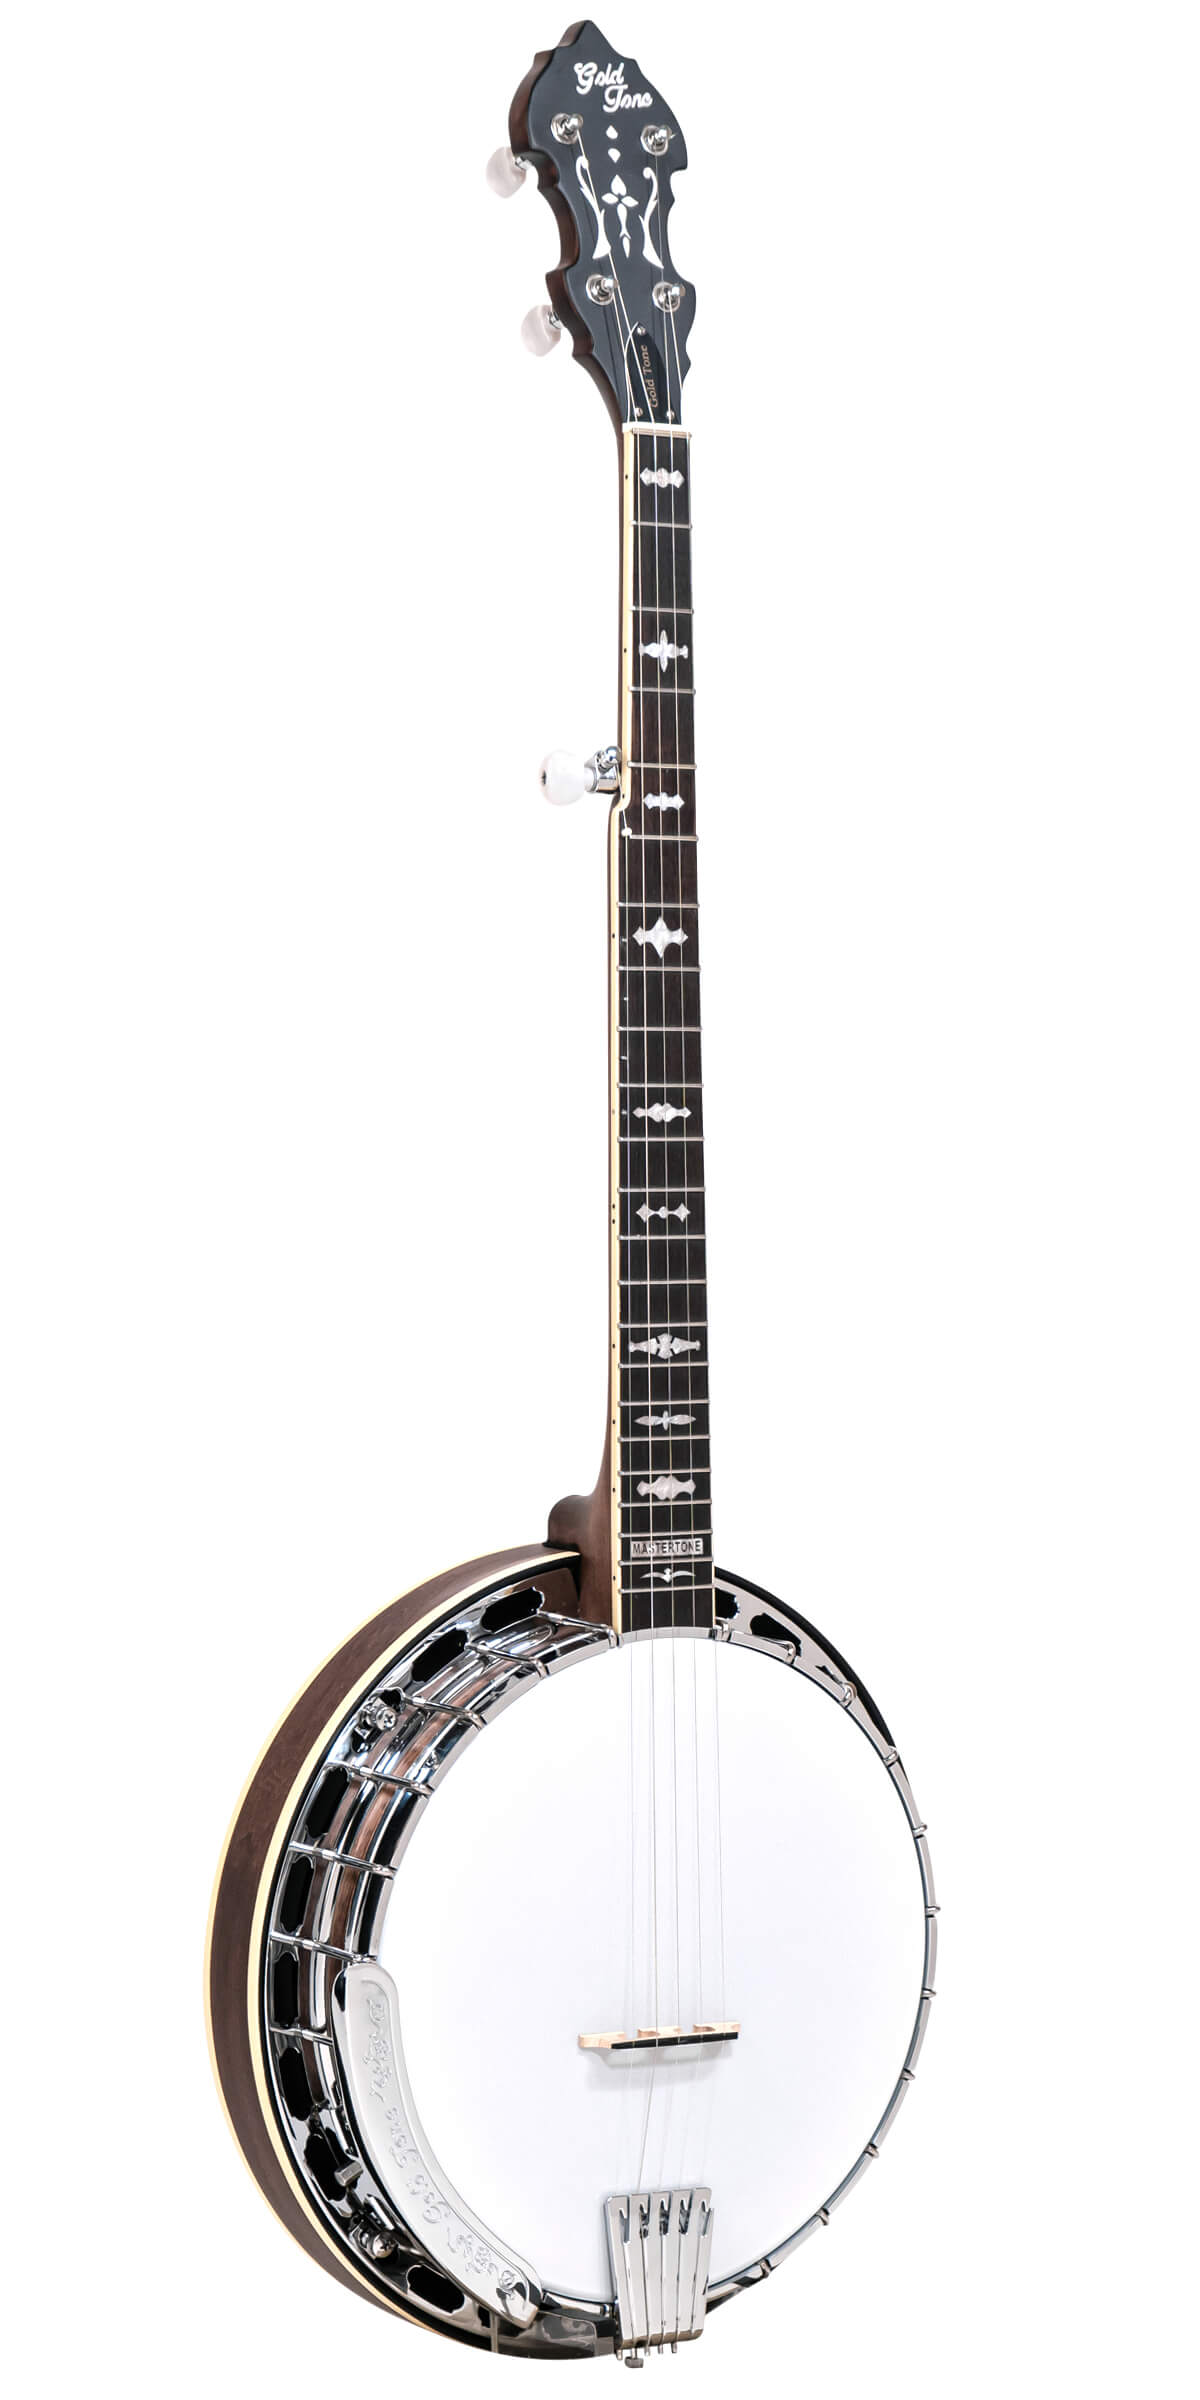 OB-150R: Orange Blossom Radiused Banjo